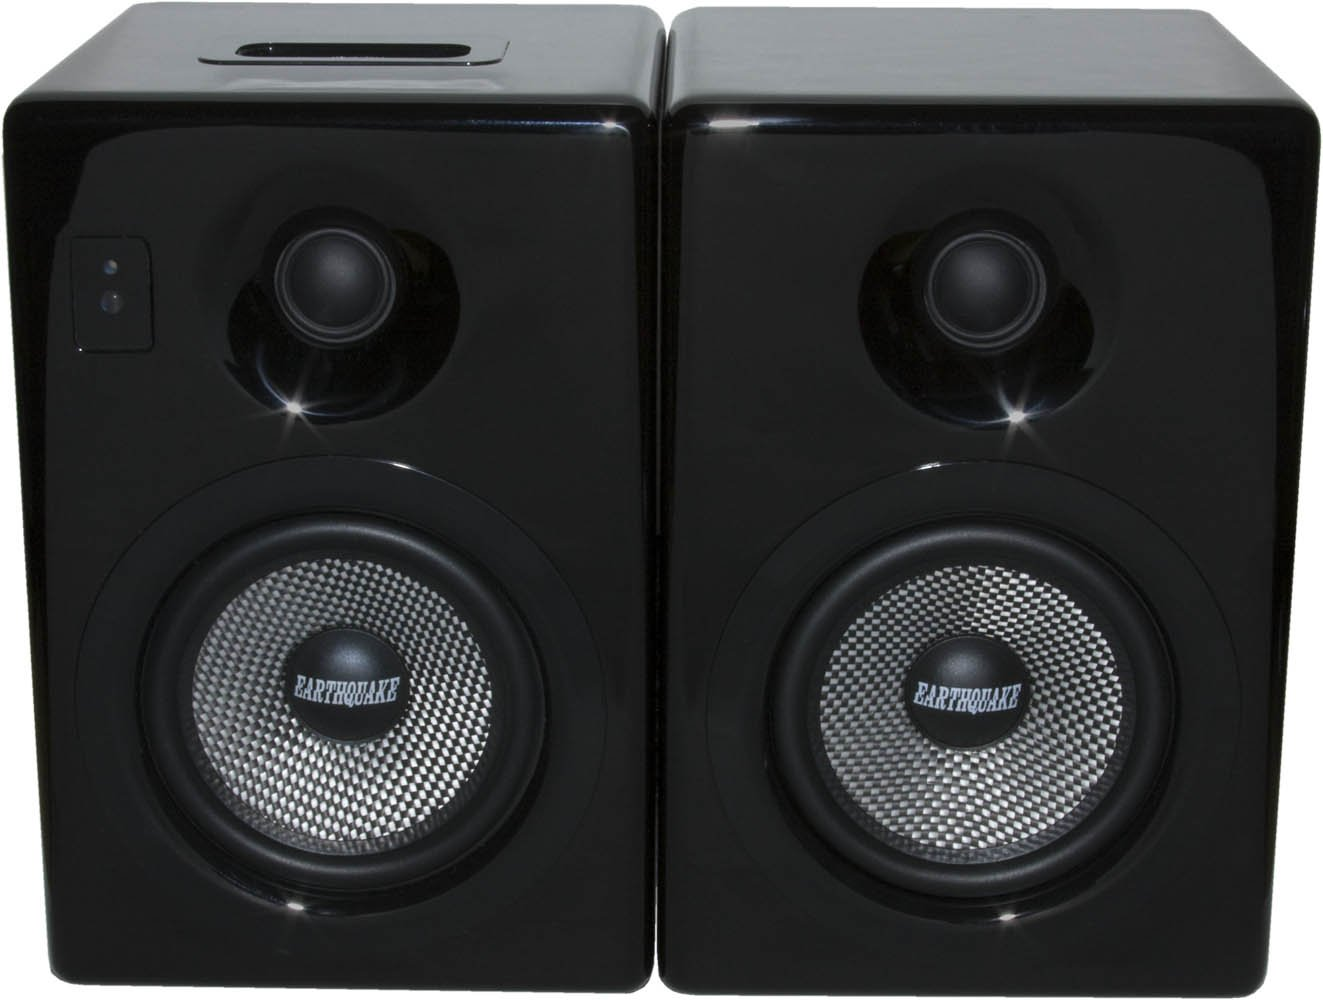 Earthquake Sound IQ52B iPod Docking Speaker System (Black Piano Gloss, Pair) by Earthquake Sound